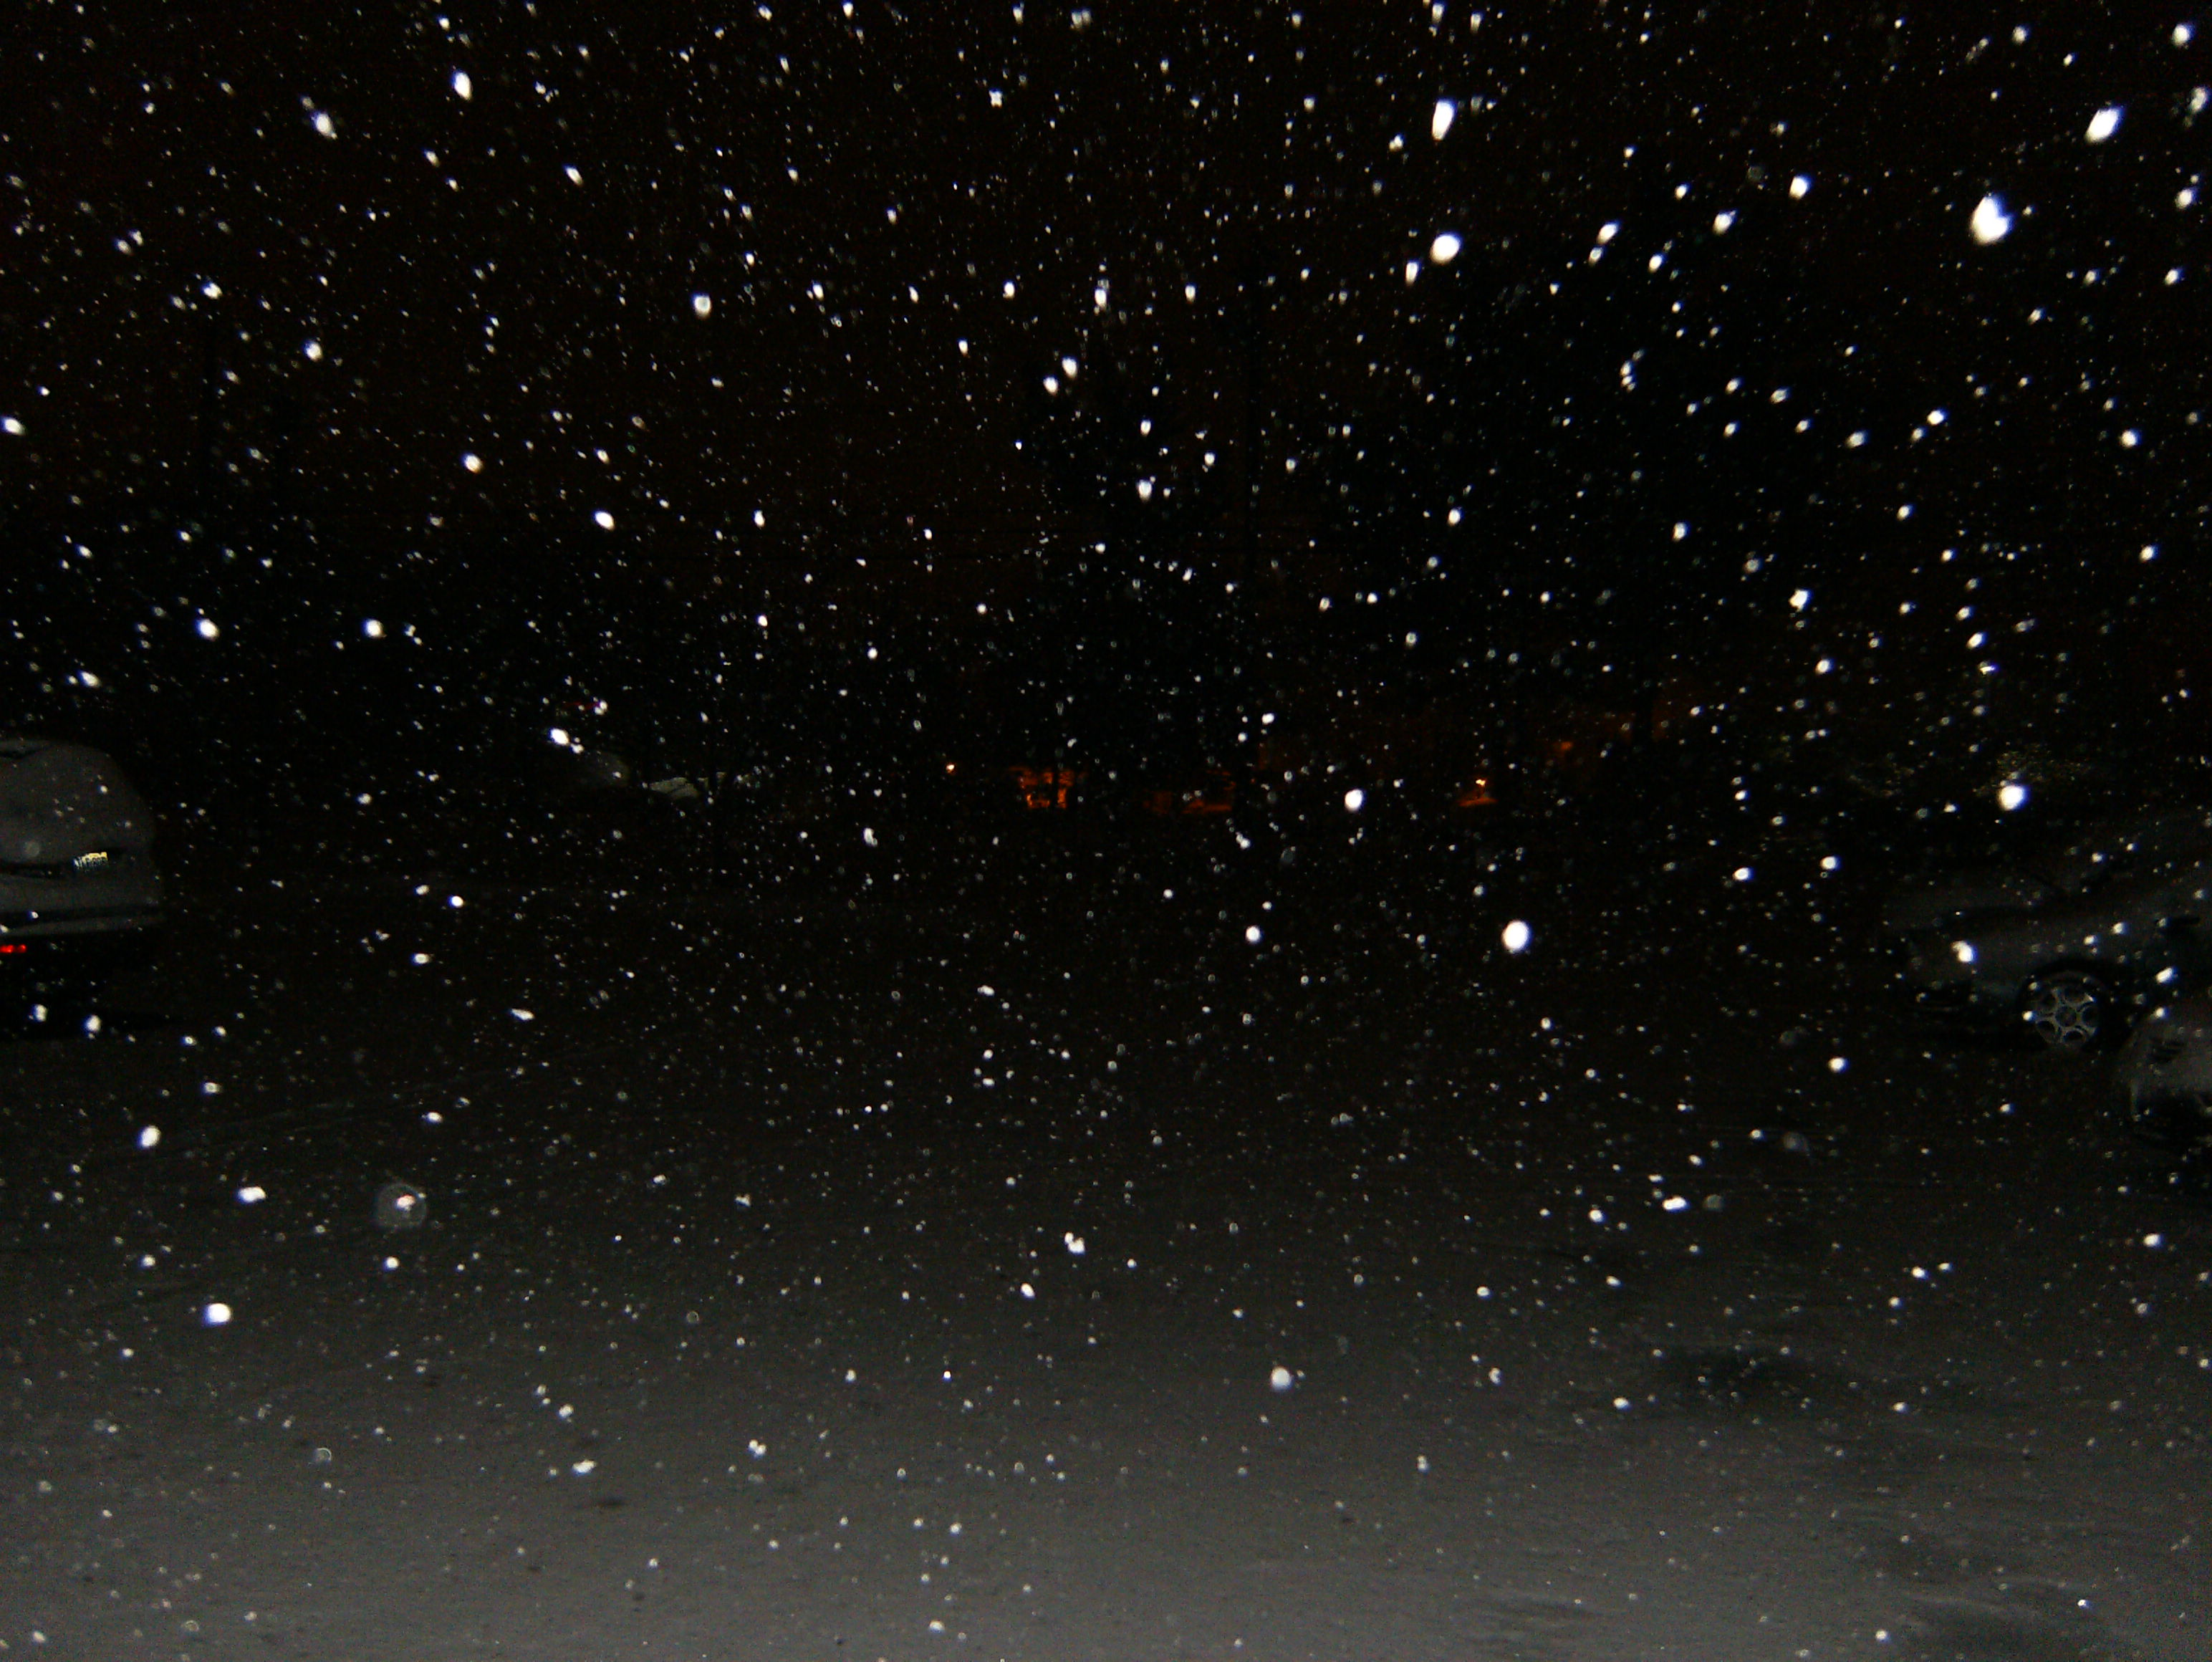 Falling Stars Gif Wallpaper Snow And Stars 171 The Schleicher Spin